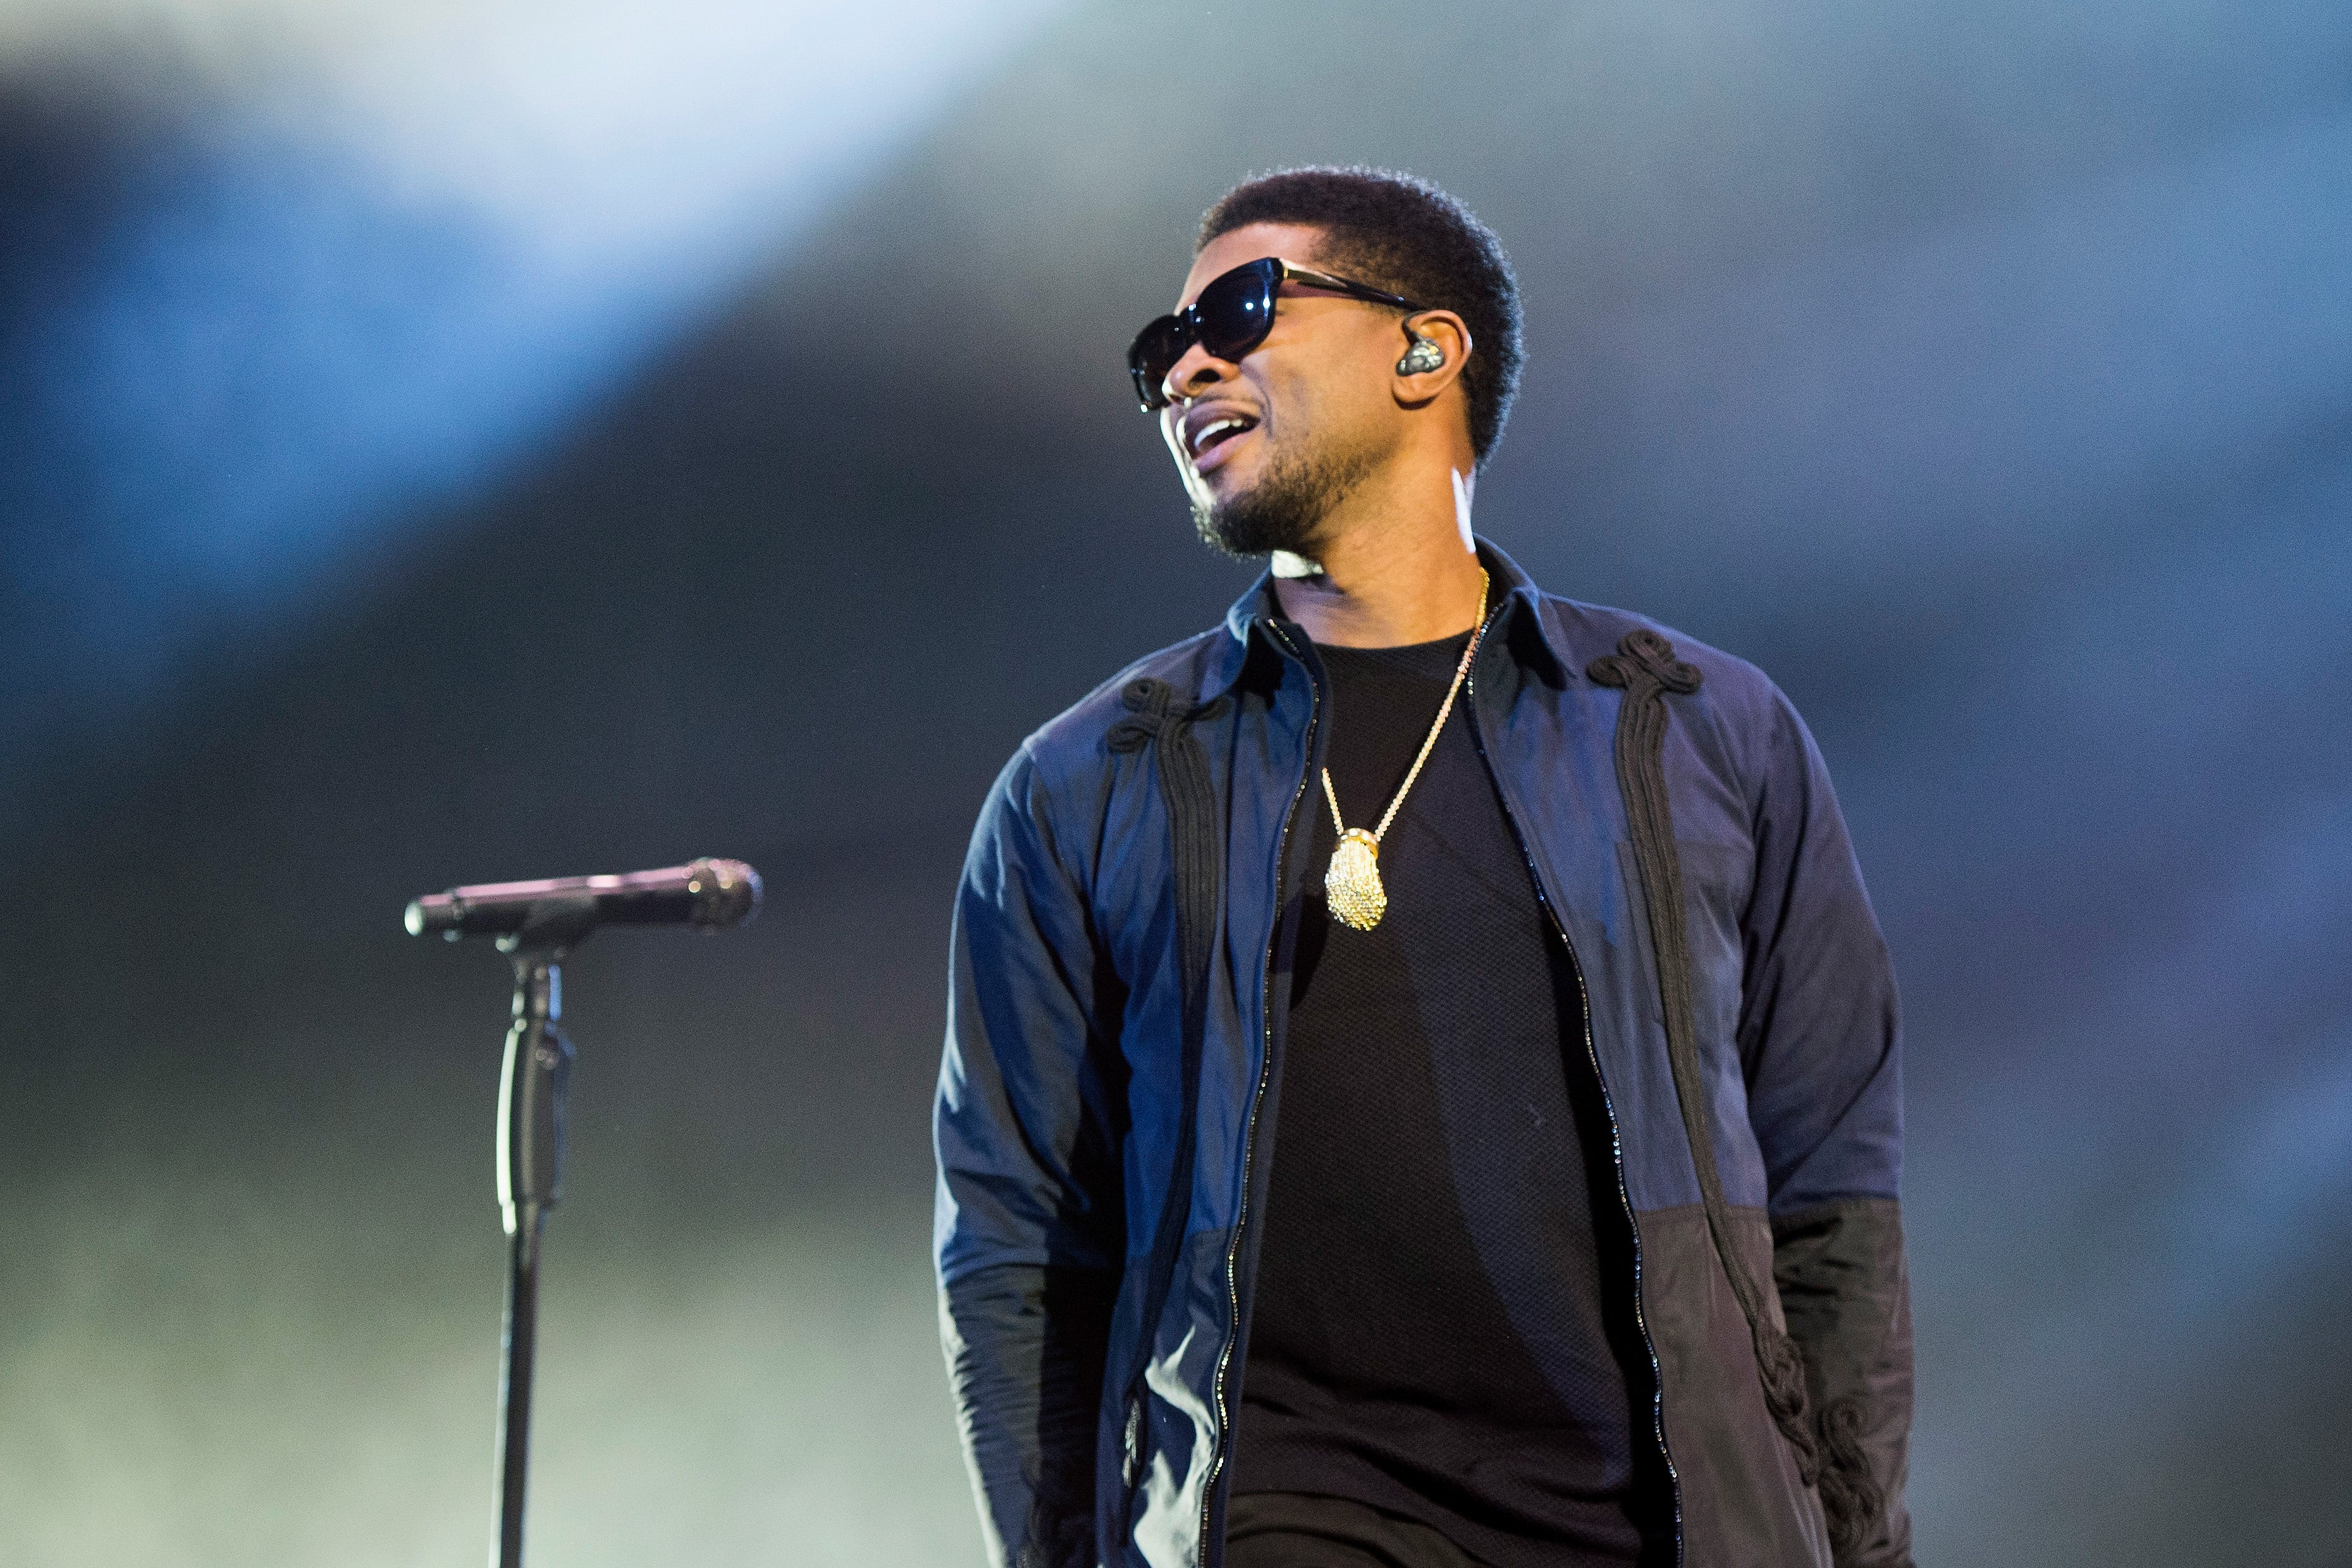 Studio Where Usher Was Recording Involved In Shooting Incident